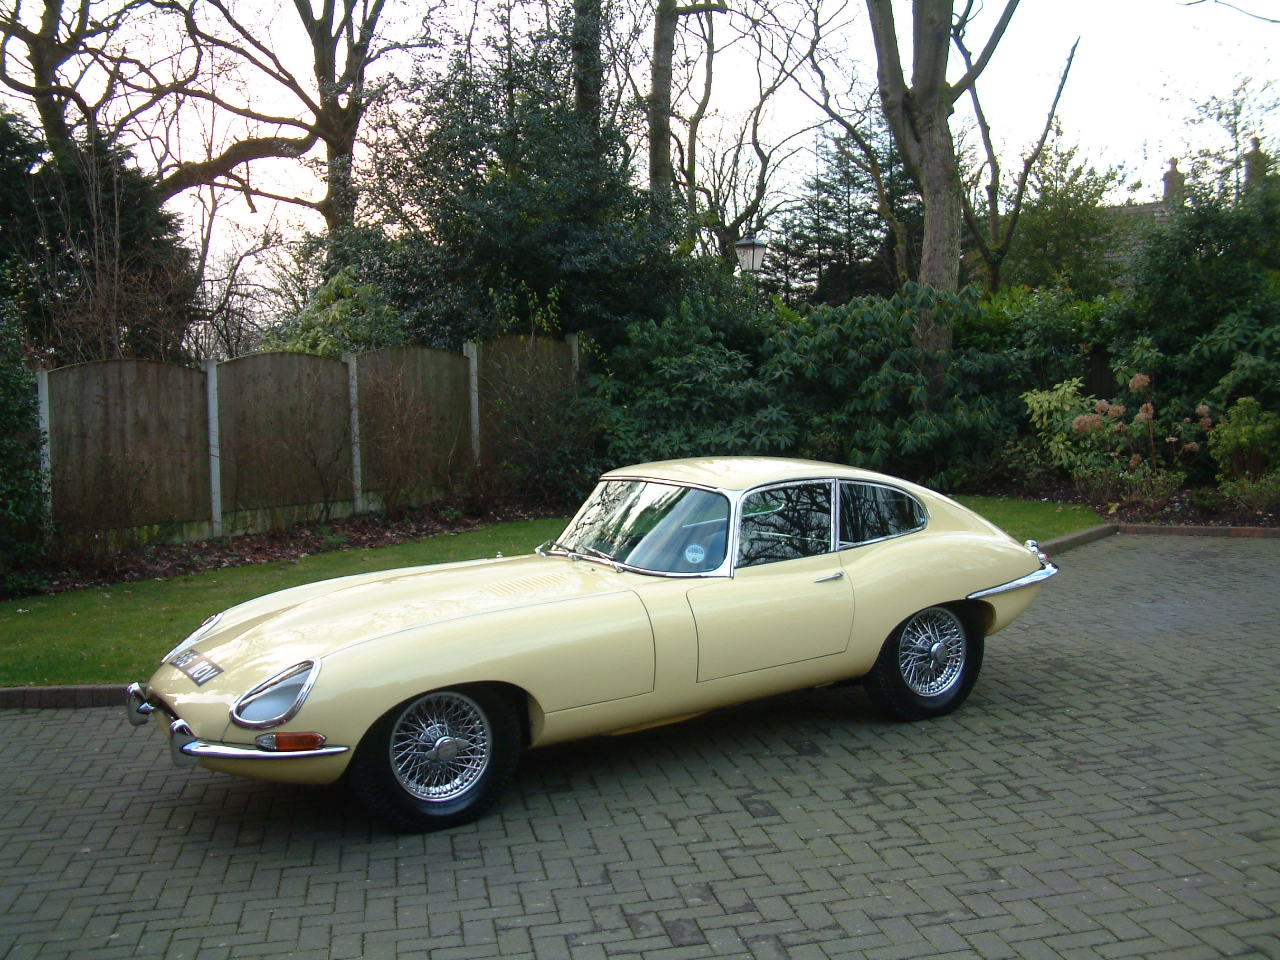 https://i0.wp.com/svs-ltd.com/wp-content/uploads/2017/10/1964-Jaguar-E-Type-3.8-FHC-Multi-Concours-085.jpg